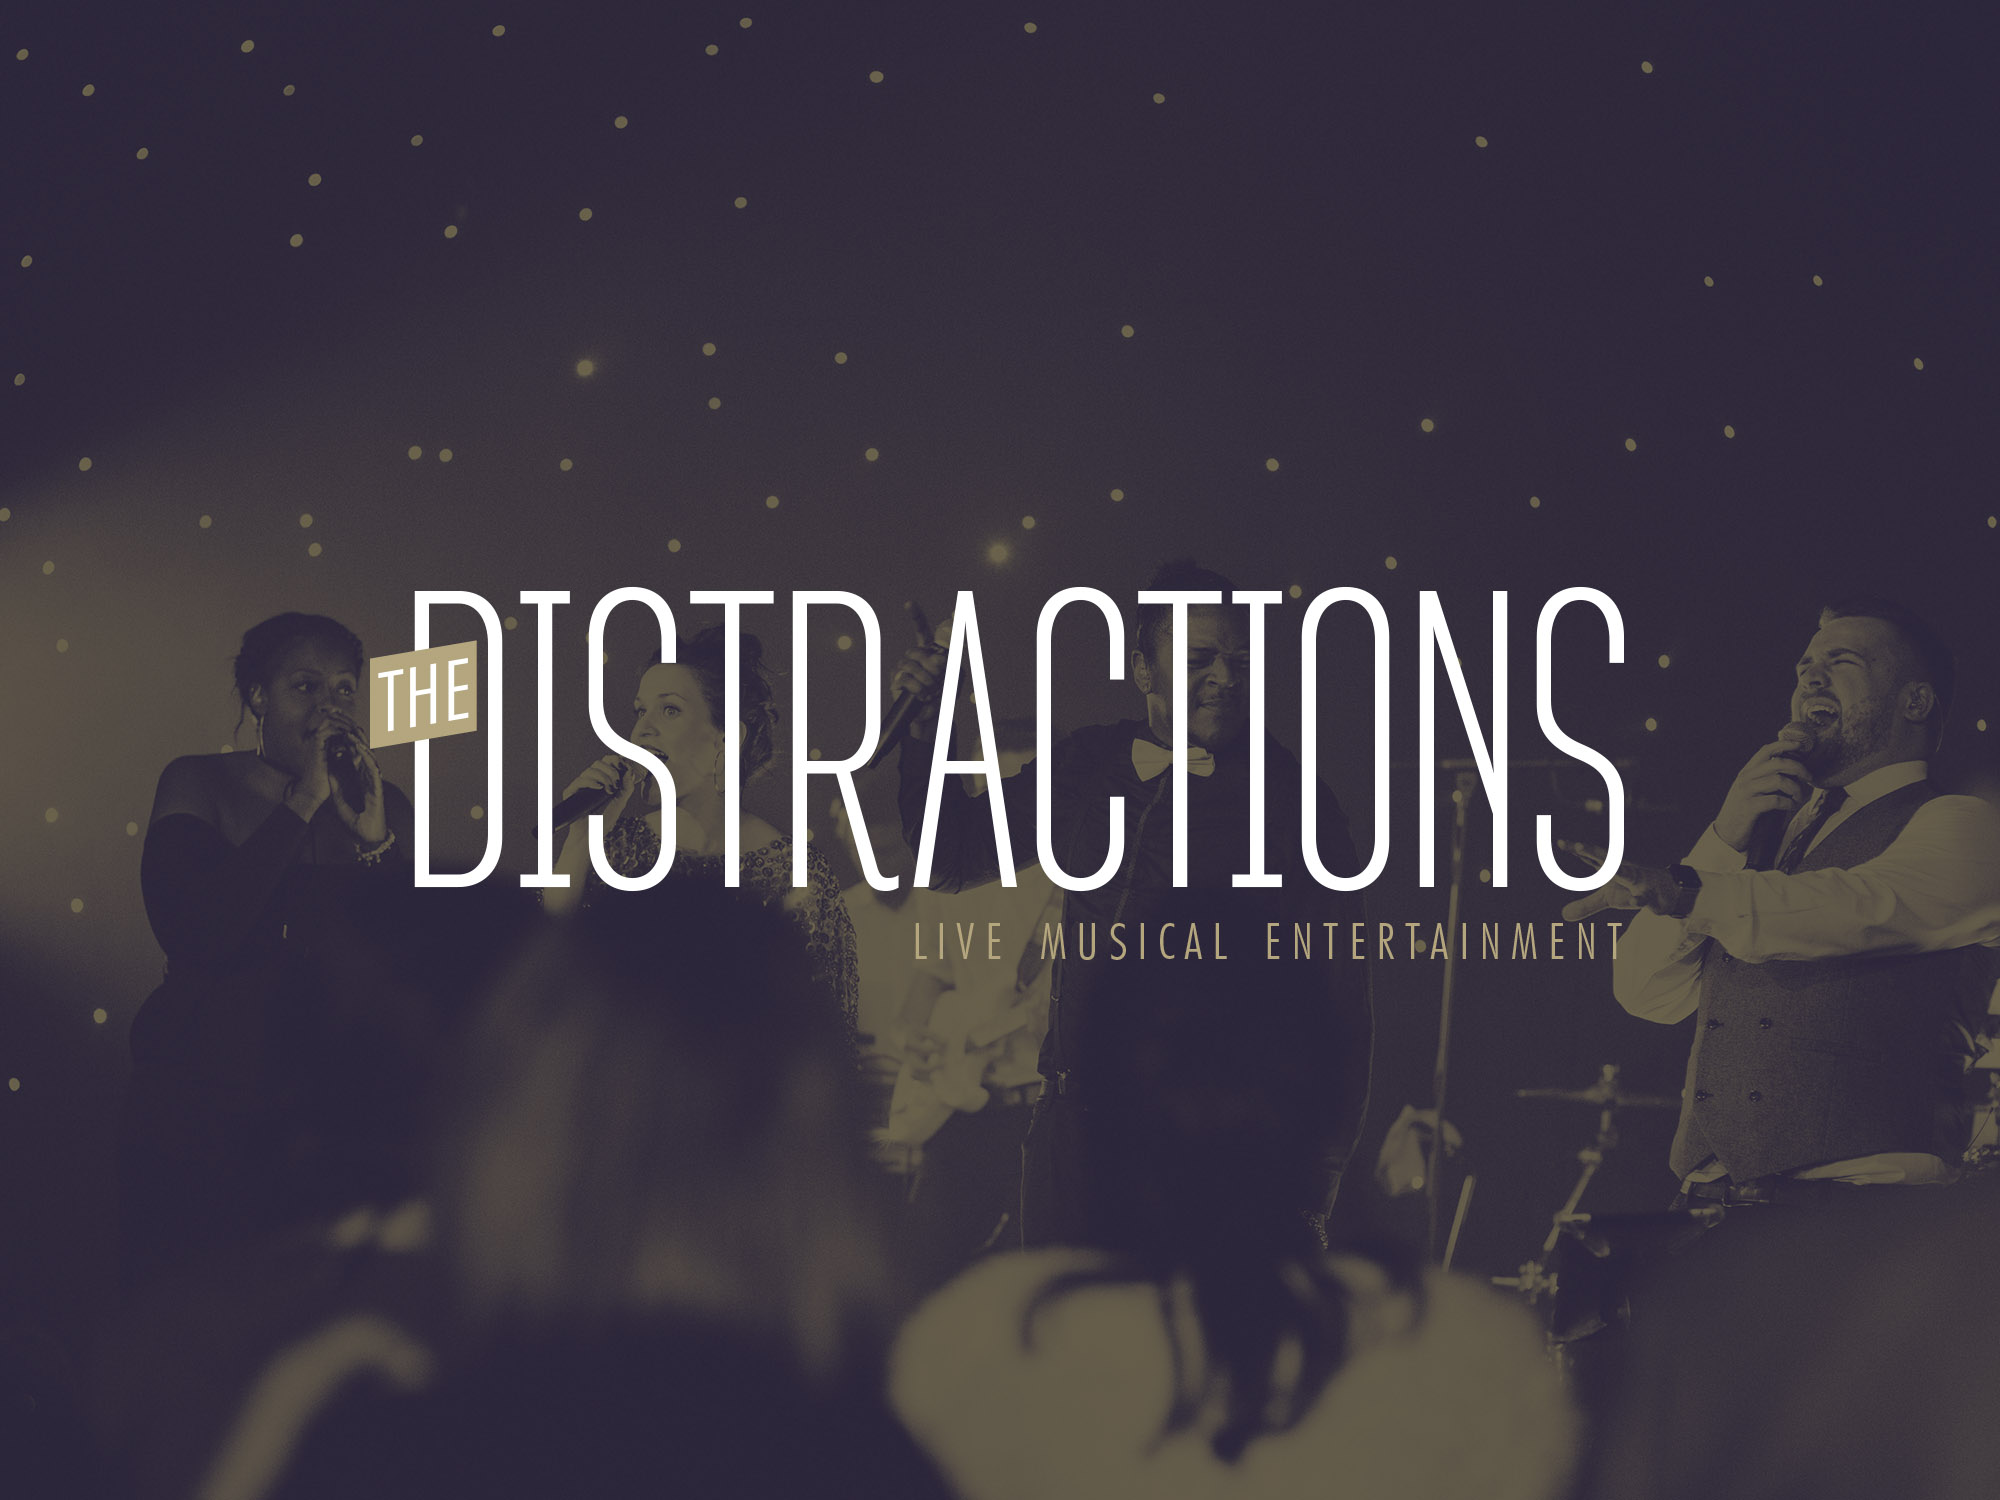 The Distractions